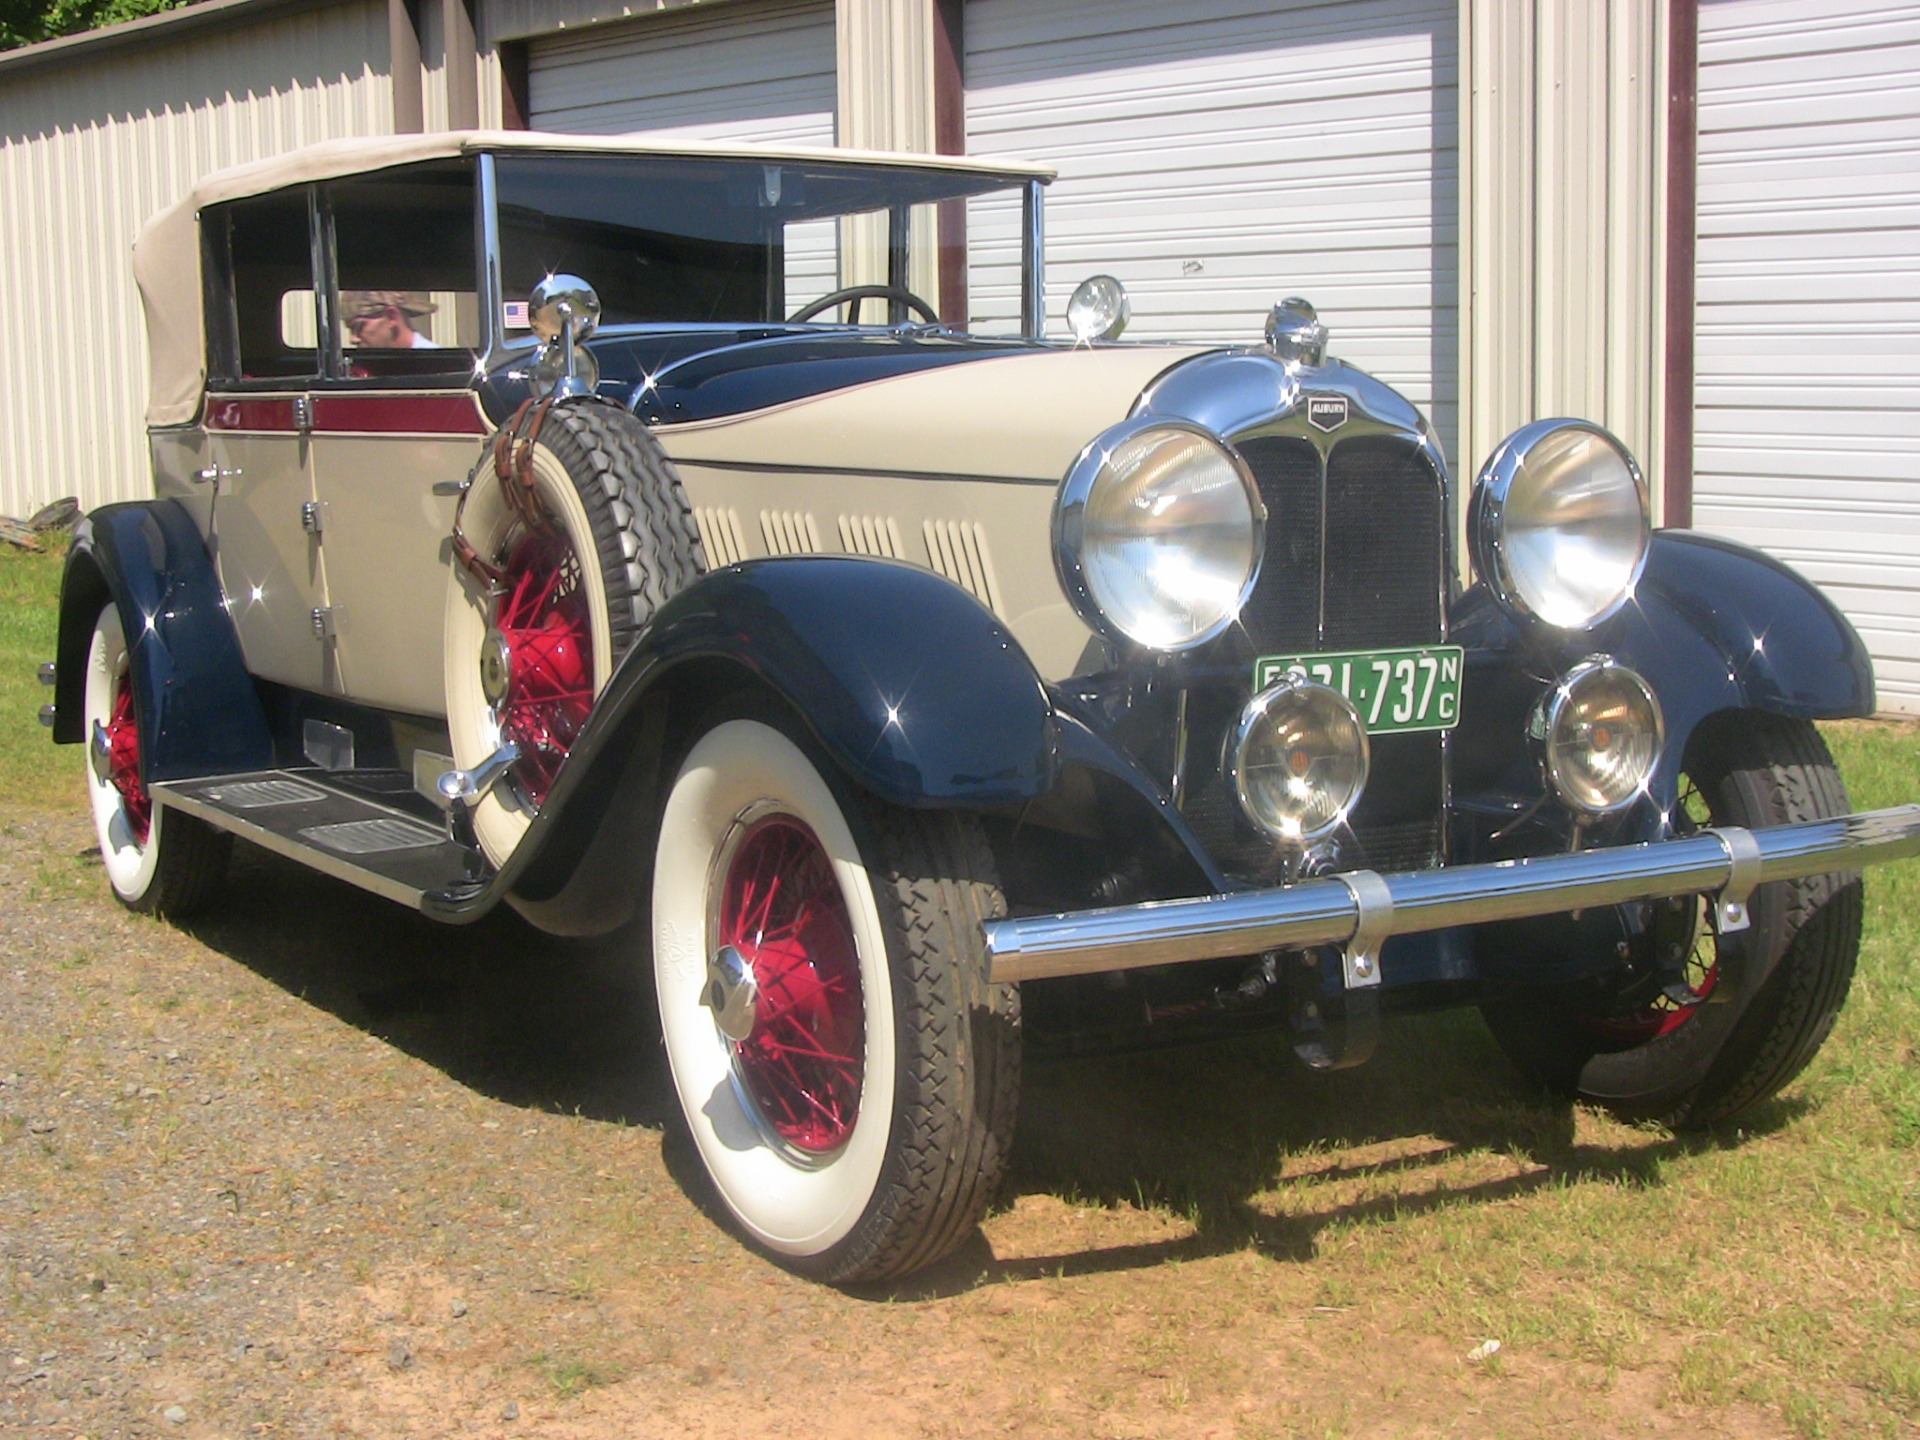 Used-1928-Auburn-Phaeton-Convertible-Sedan